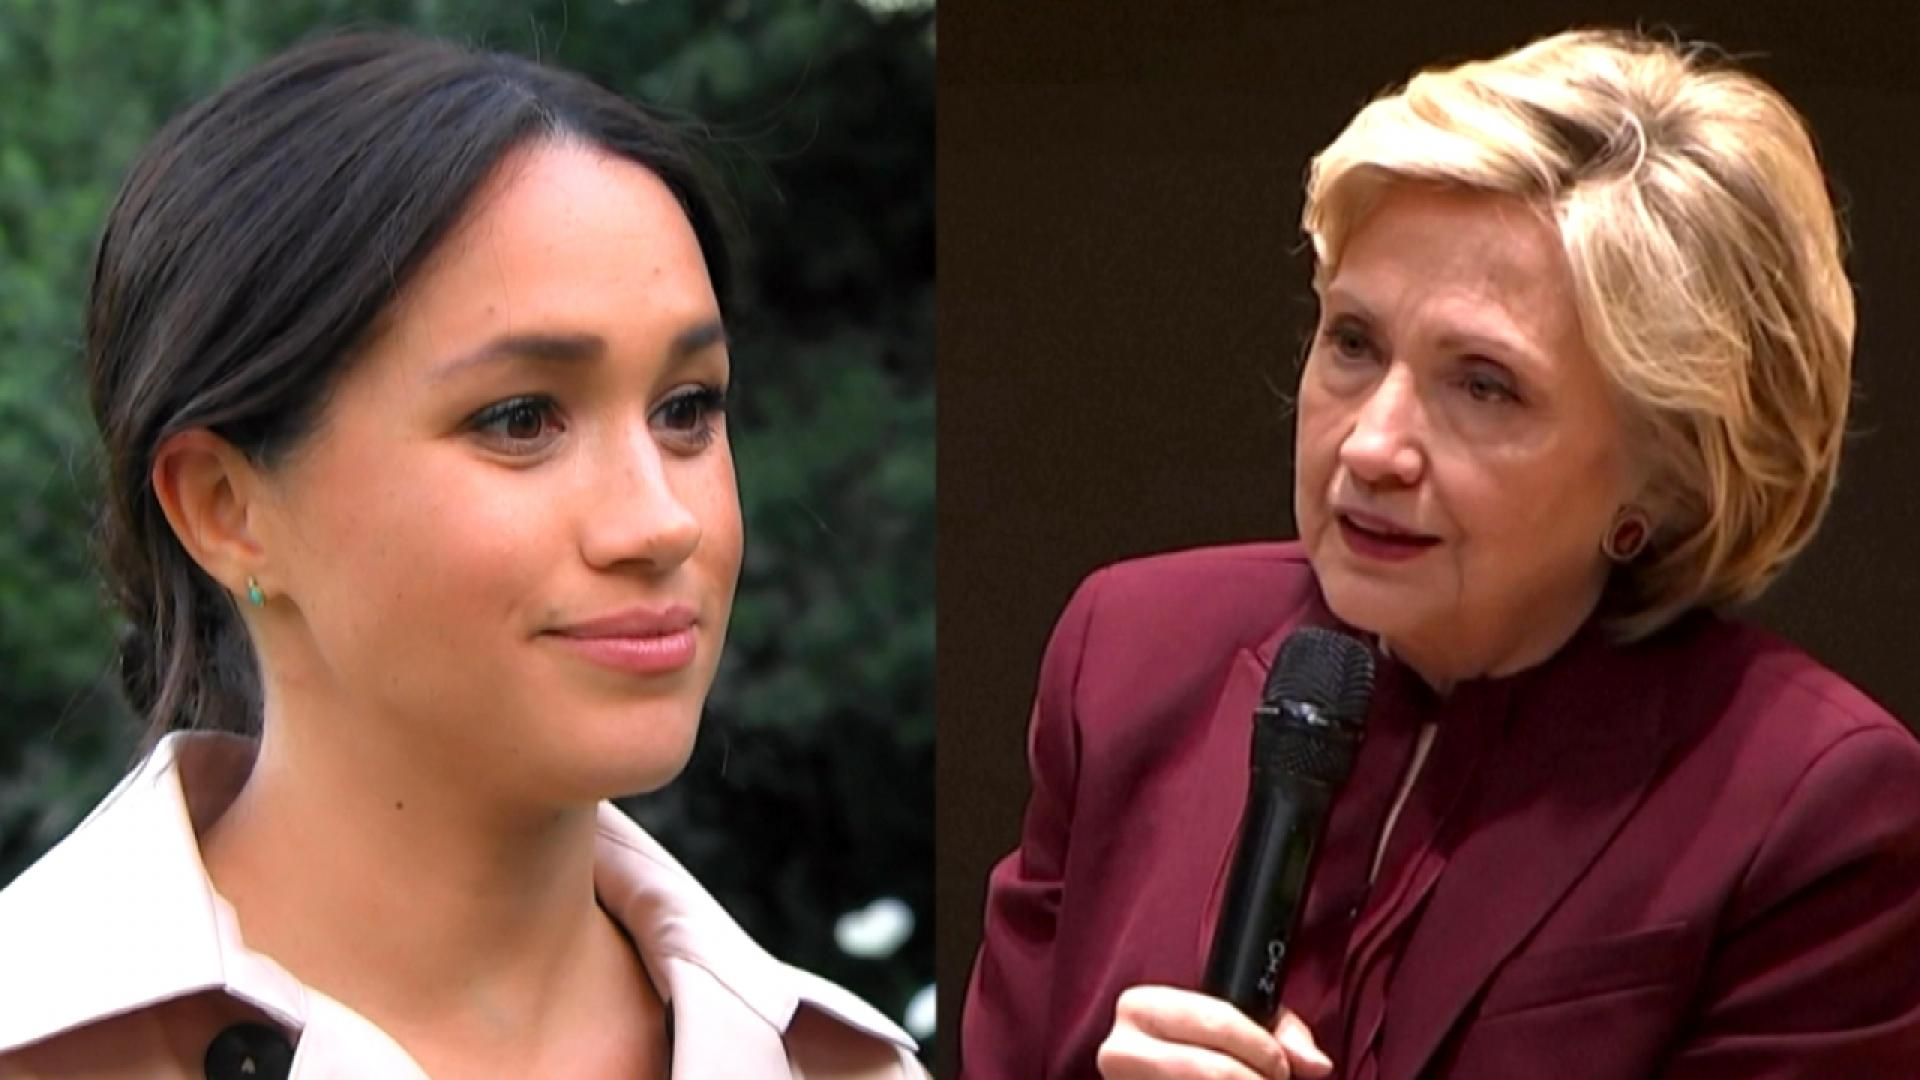 Former First Lady Hillary Clinton Visits Meghan Markle at Frogmore Cottage